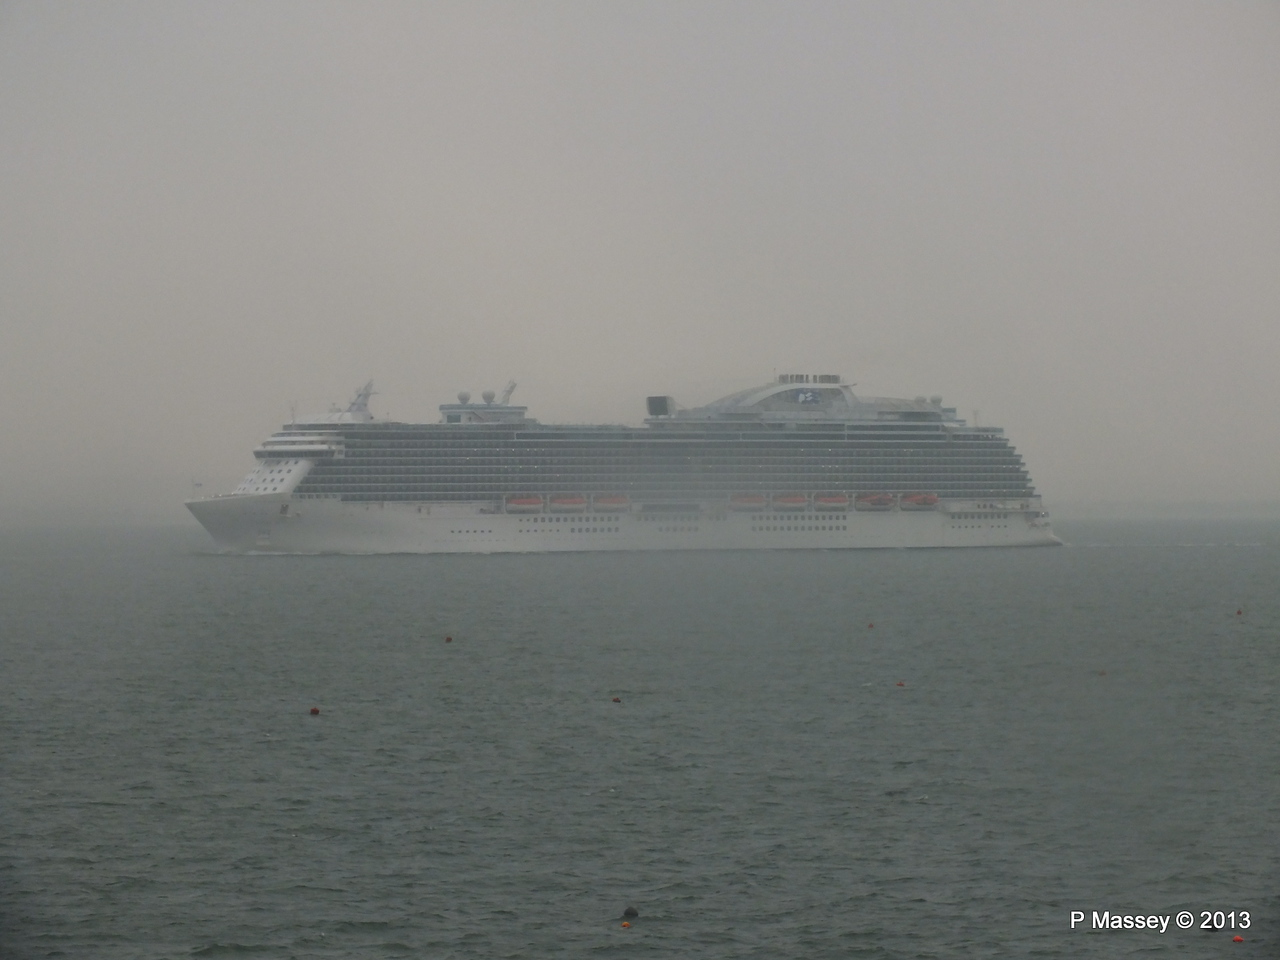 ROYAL PRINCESS Cowes PDM 07-06-2013 10-04-49